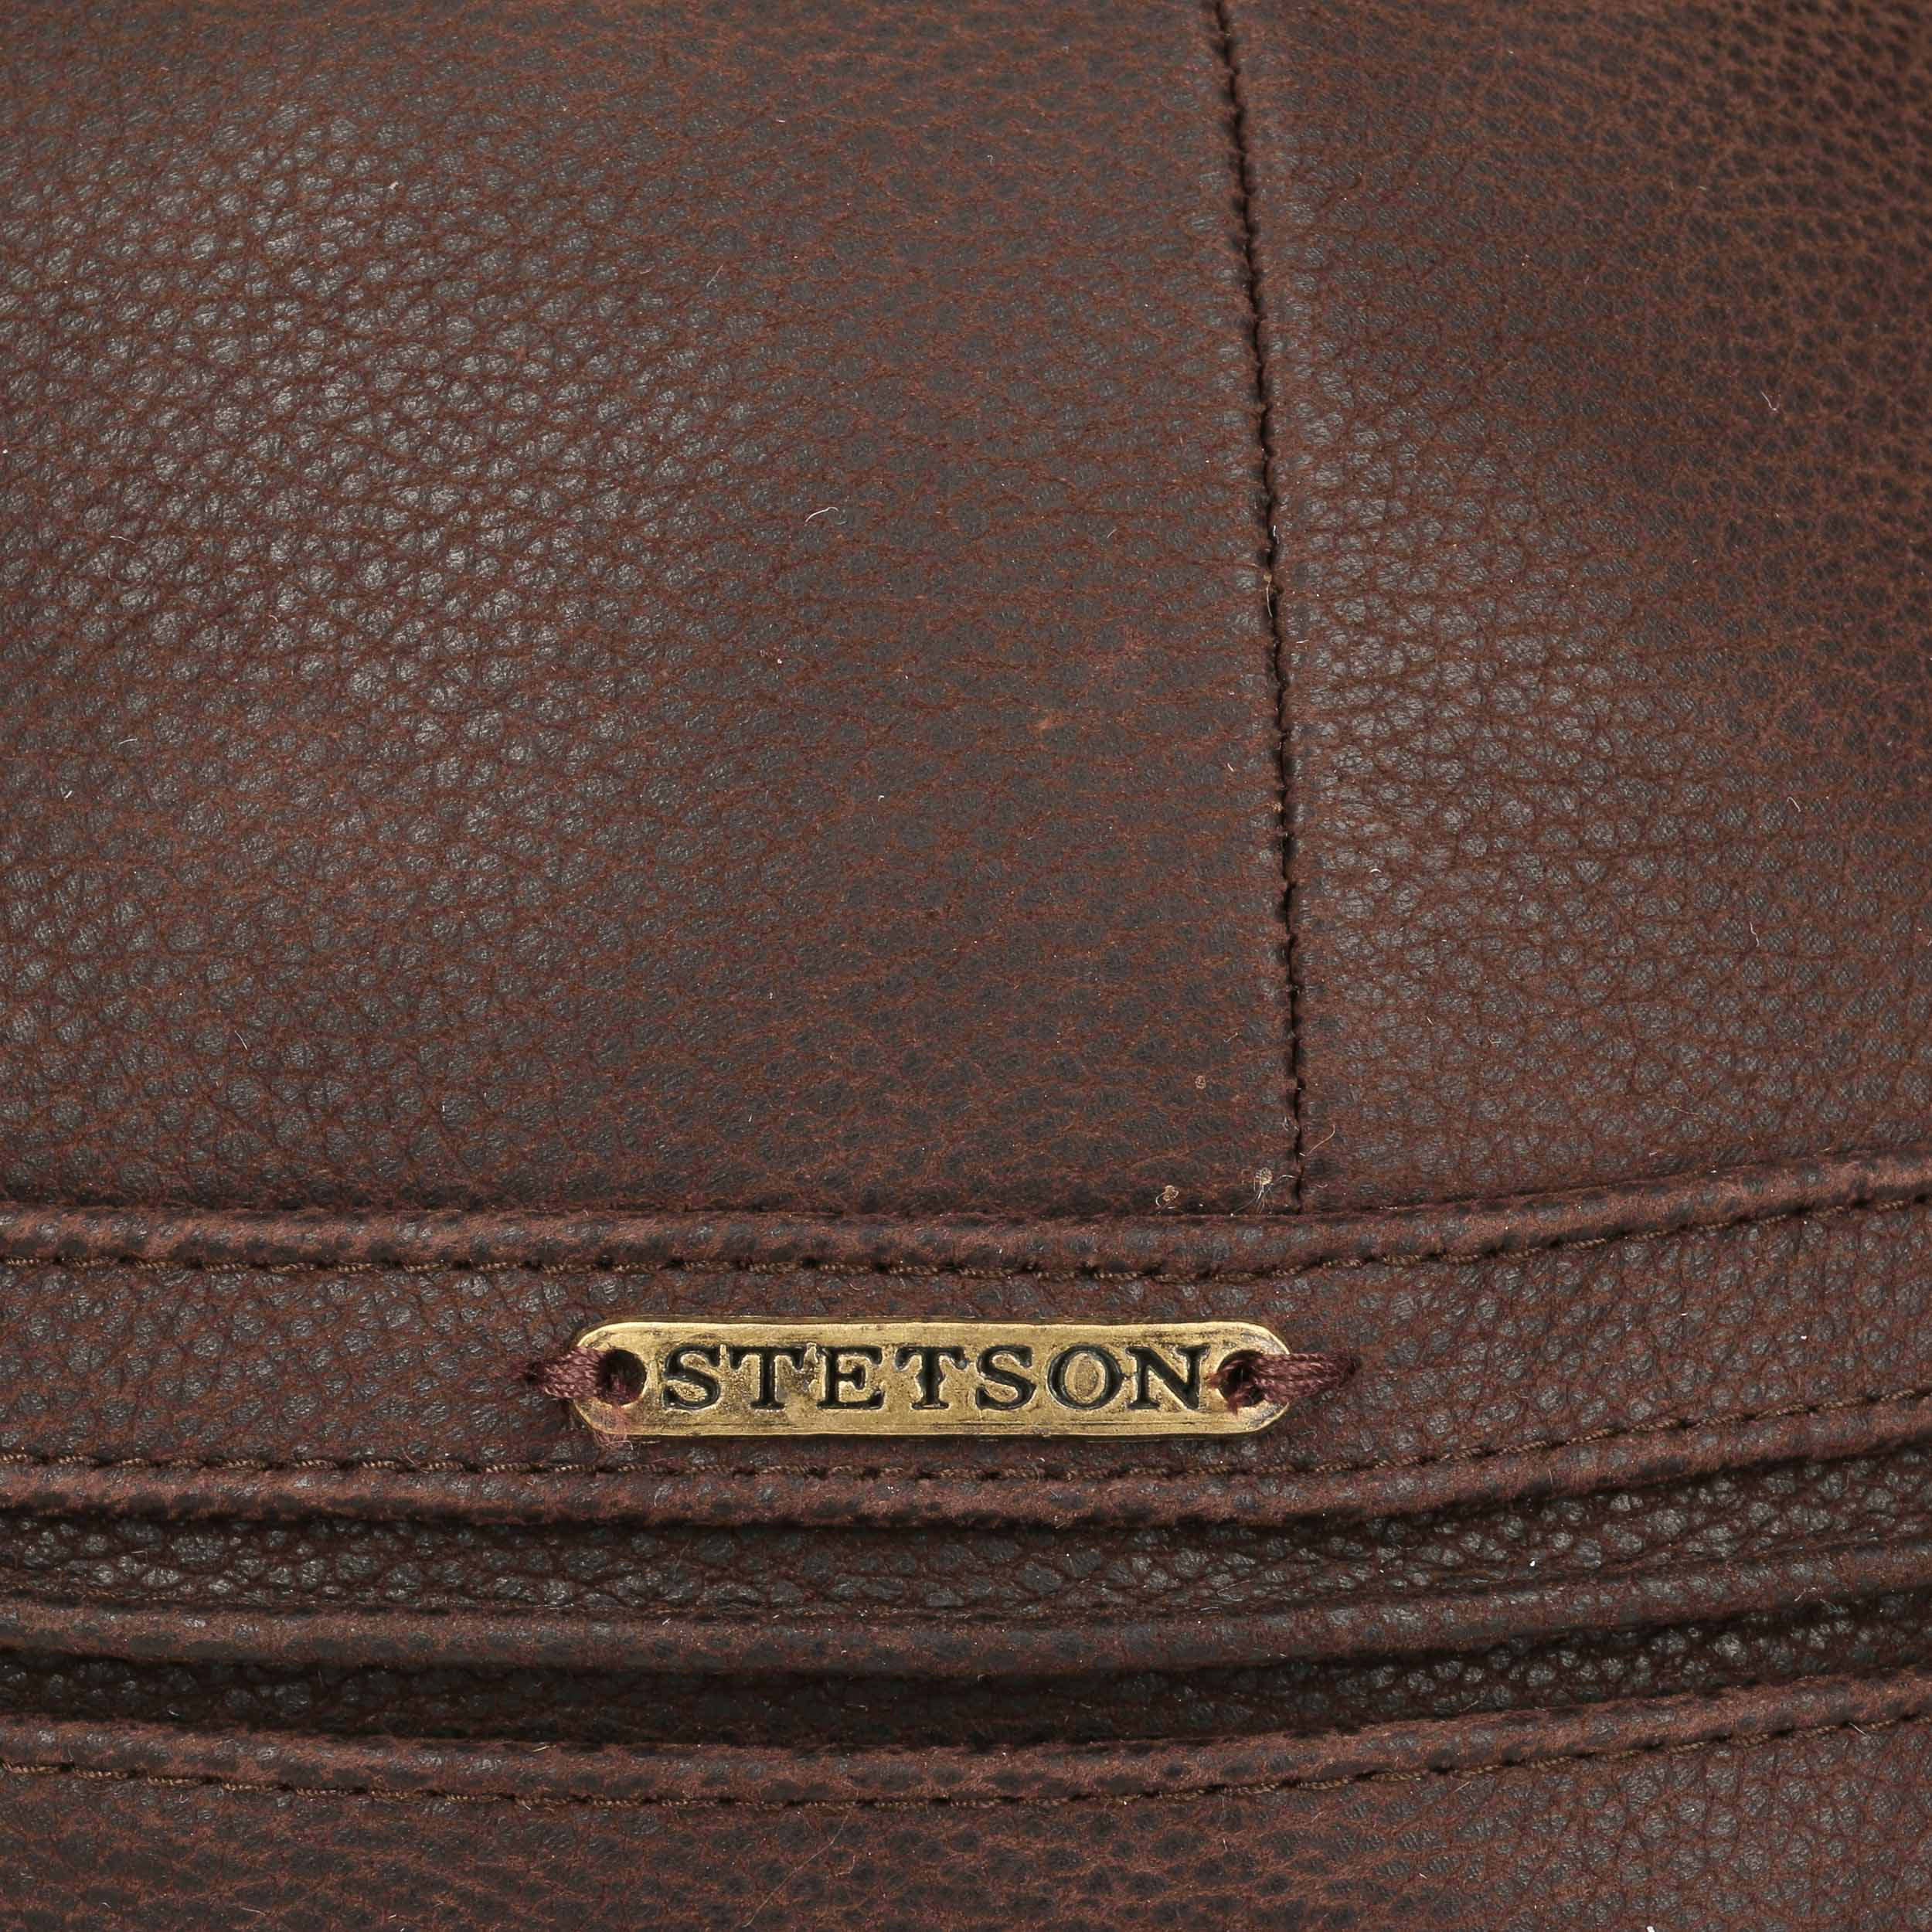 b87b9b326 ... Byers Leather Cap by Stetson - brown 4 ...